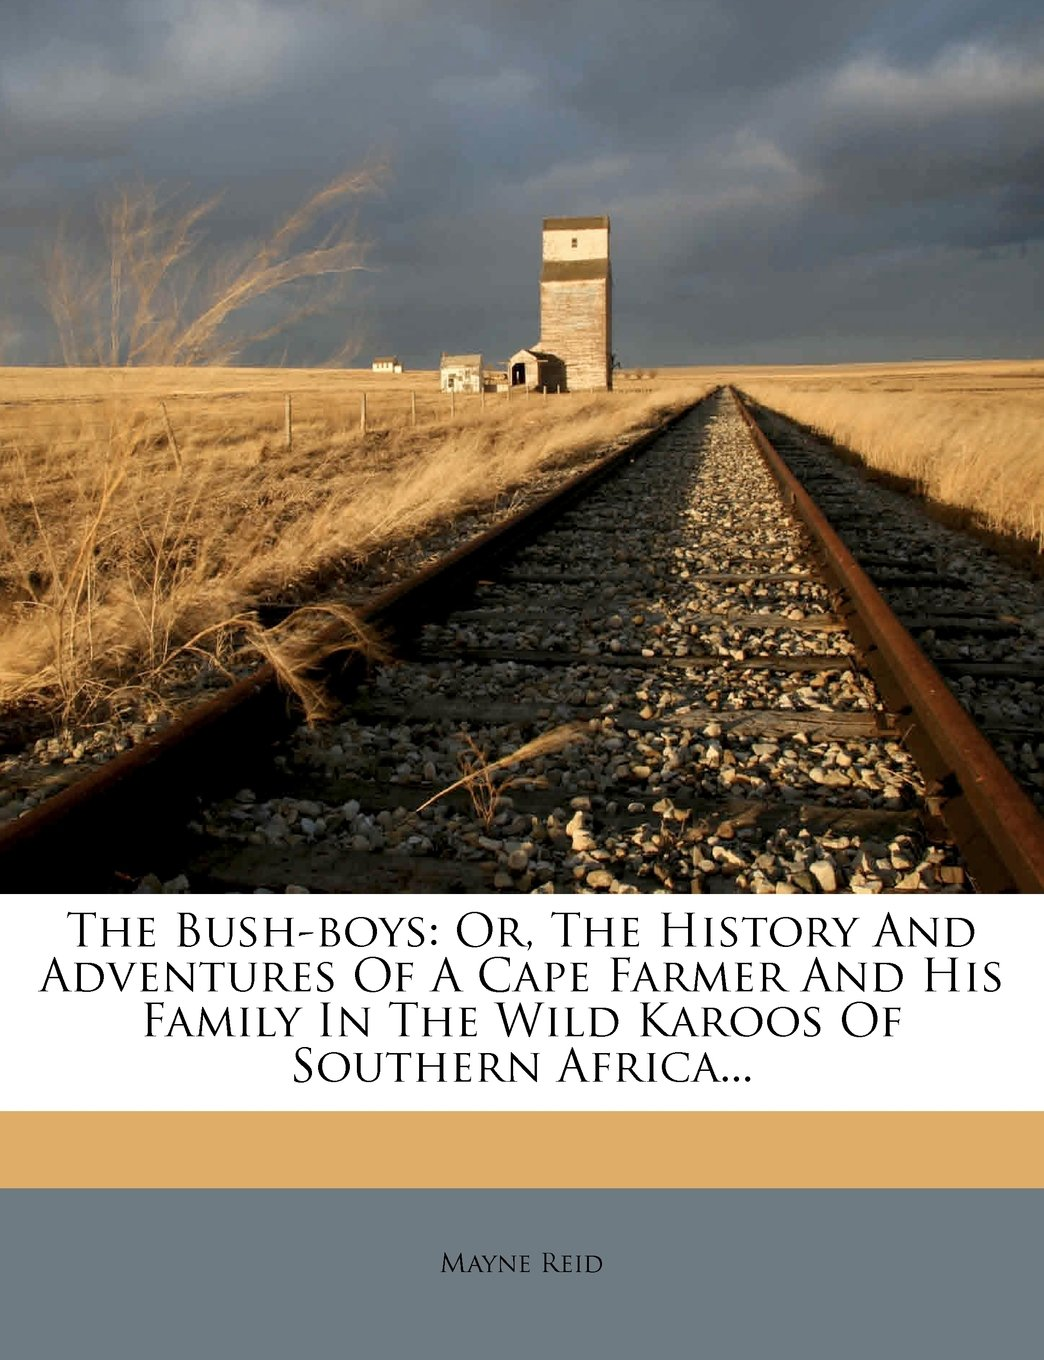 Download The Bush-boys: Or, The History And Adventures Of A Cape Farmer And His Family In The Wild Karoos Of Southern Africa... PDF